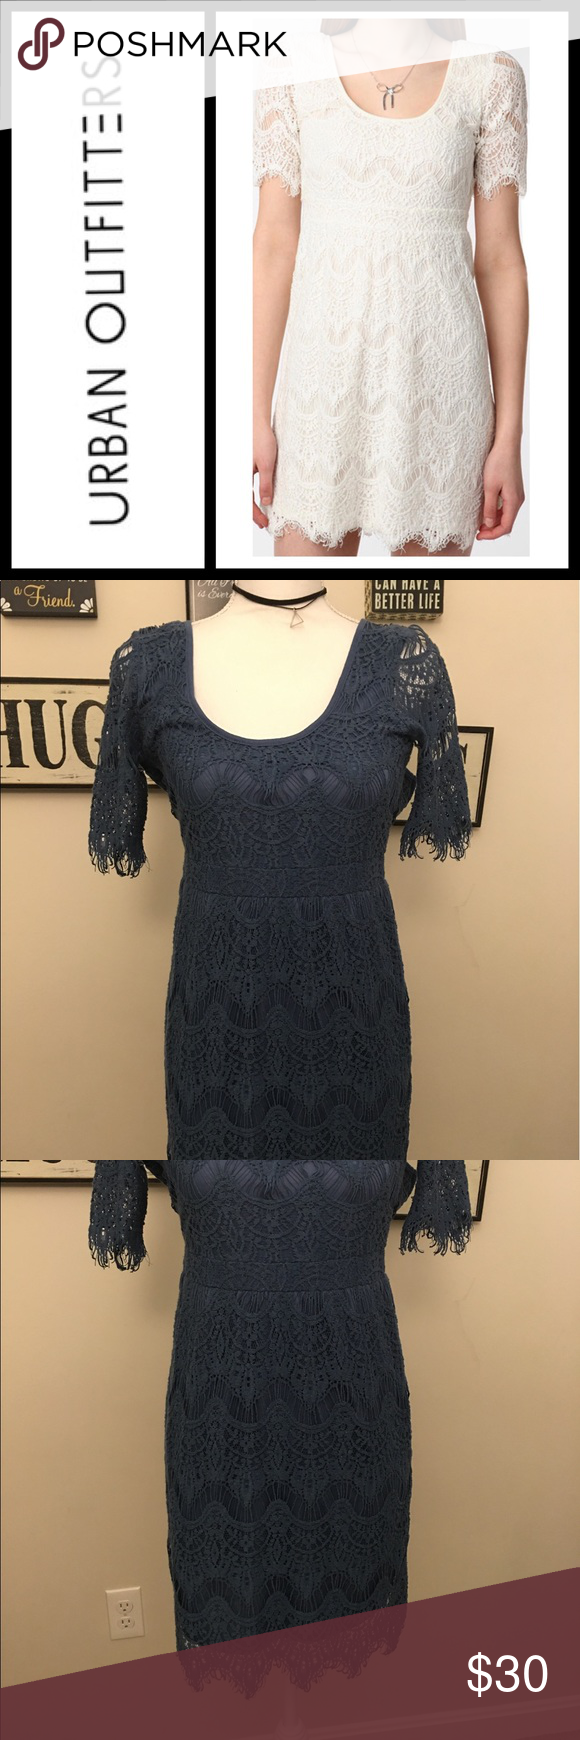 Urban Outfitters Pins & Needles blue Lace dress EUC, color is blue - size small! Urban Outfitters Dresses